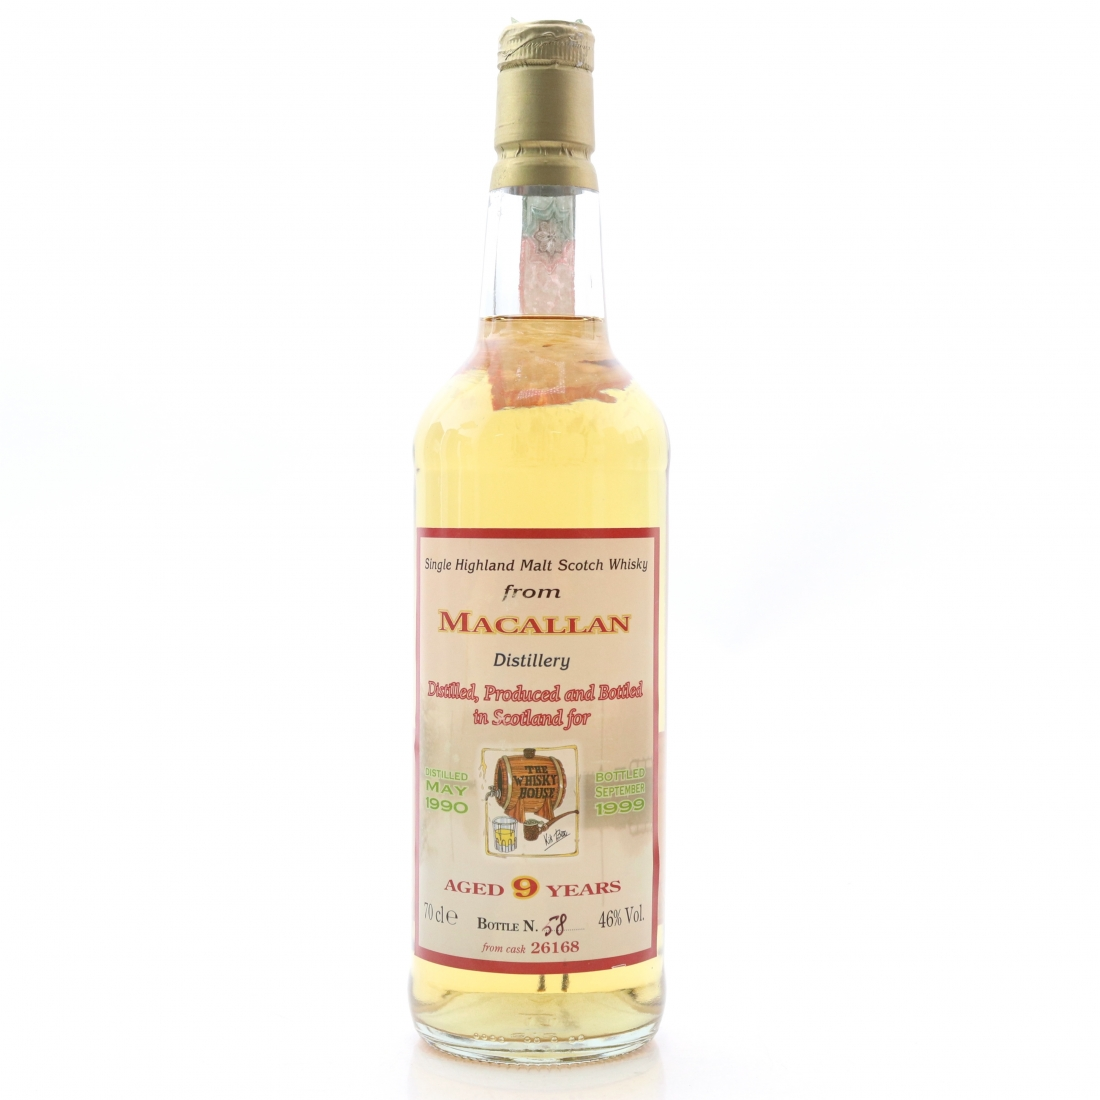 Macallan 1990 The Whisky House Single Cask 9 Year Old